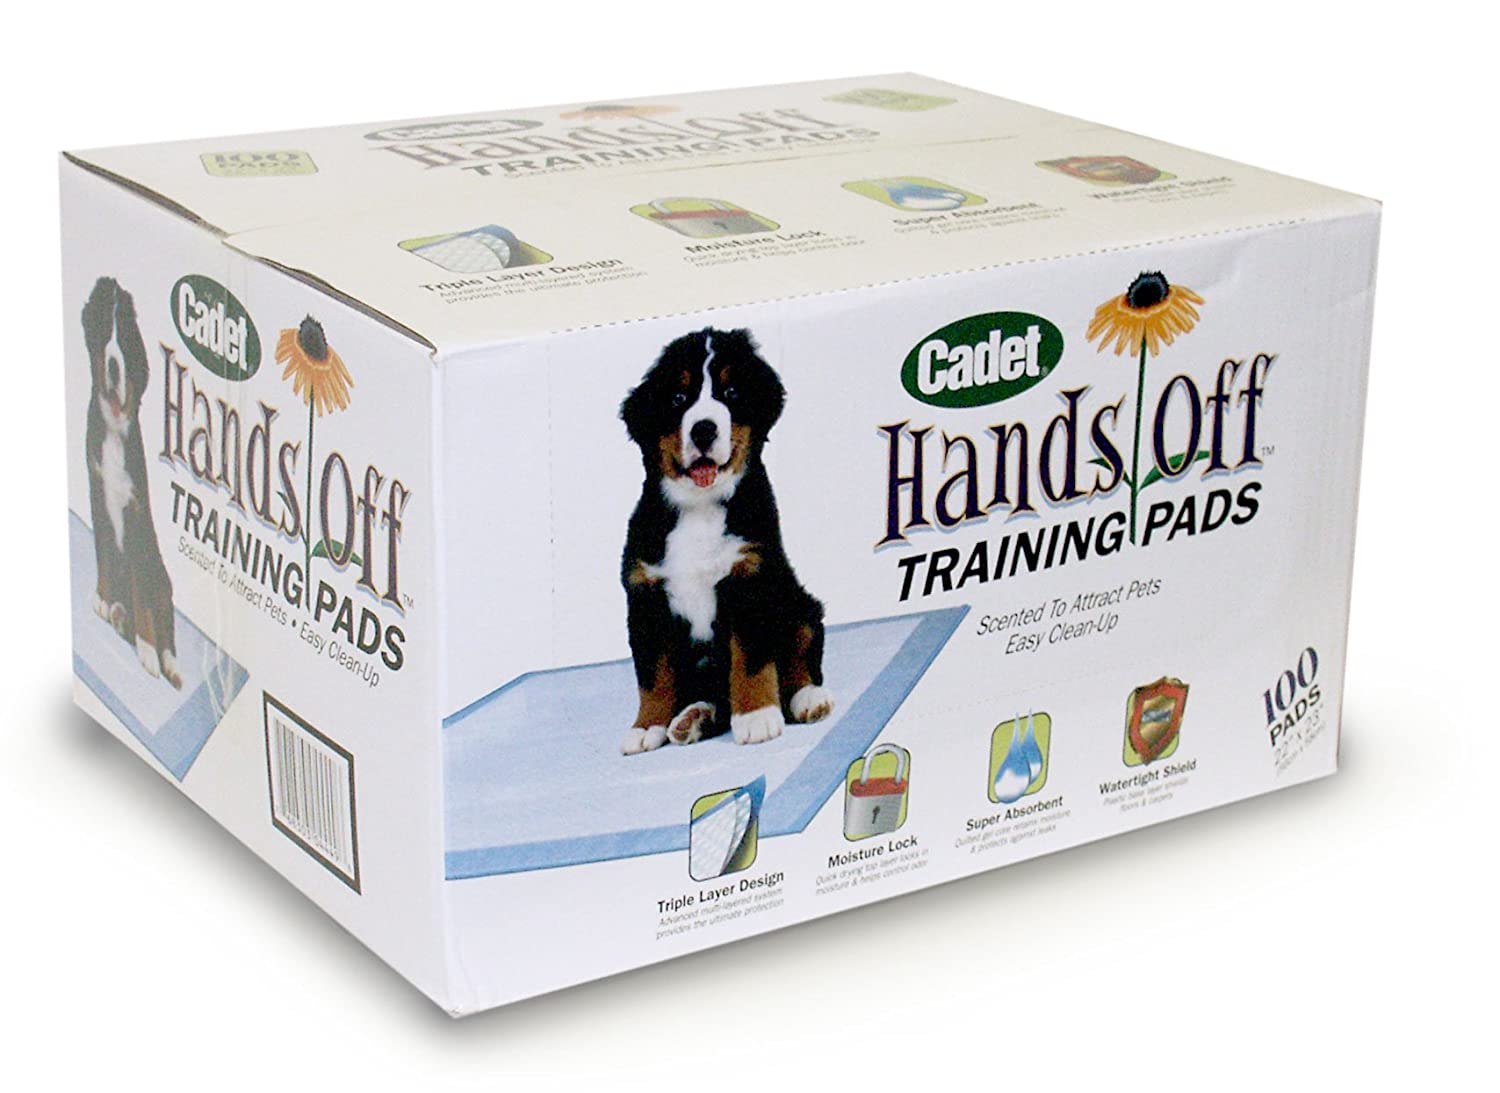 Cadet Training Pads For Dogs, 100 Count